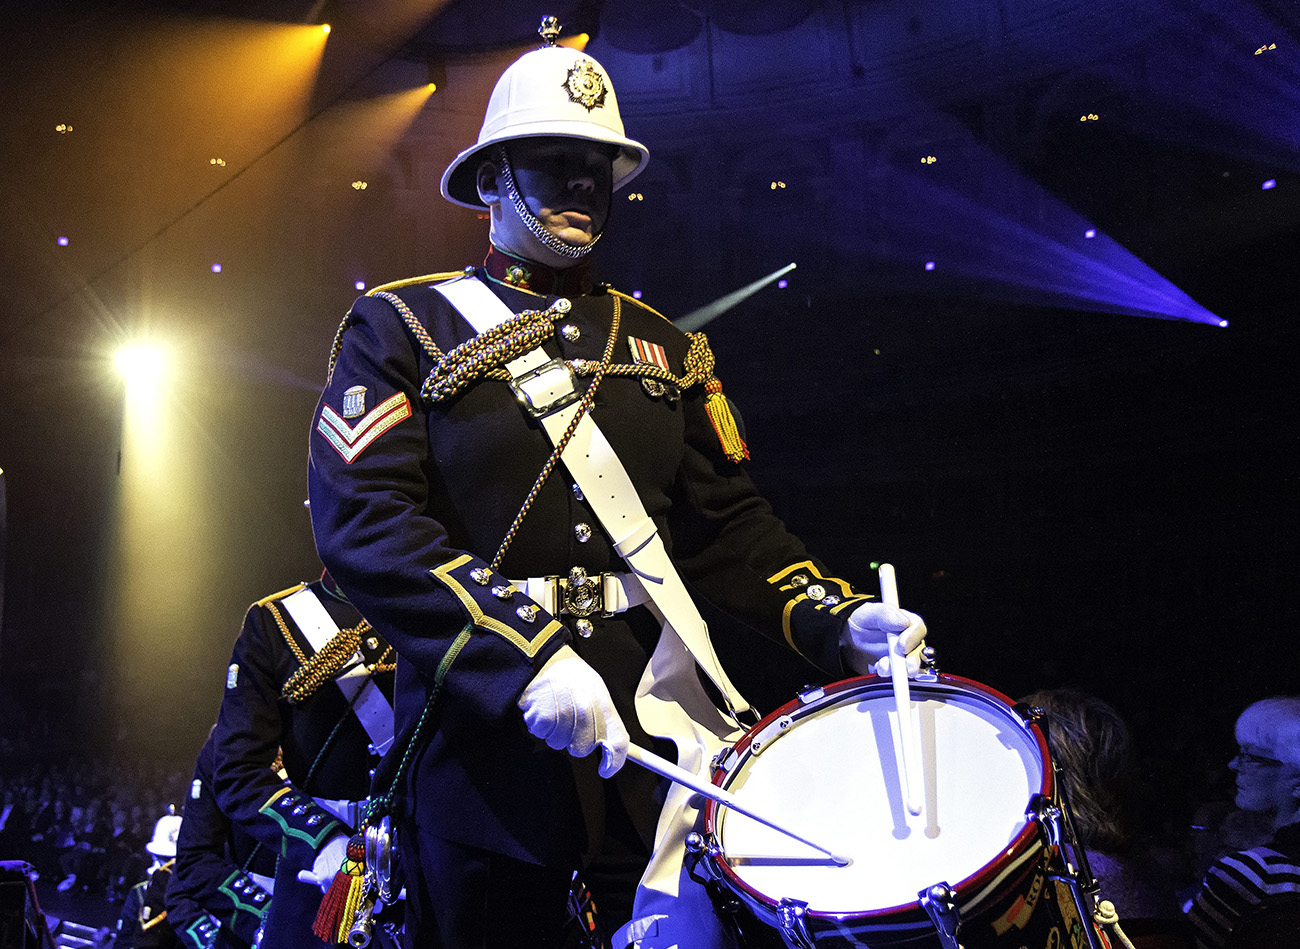 Top military musicians to stream concert live across the world